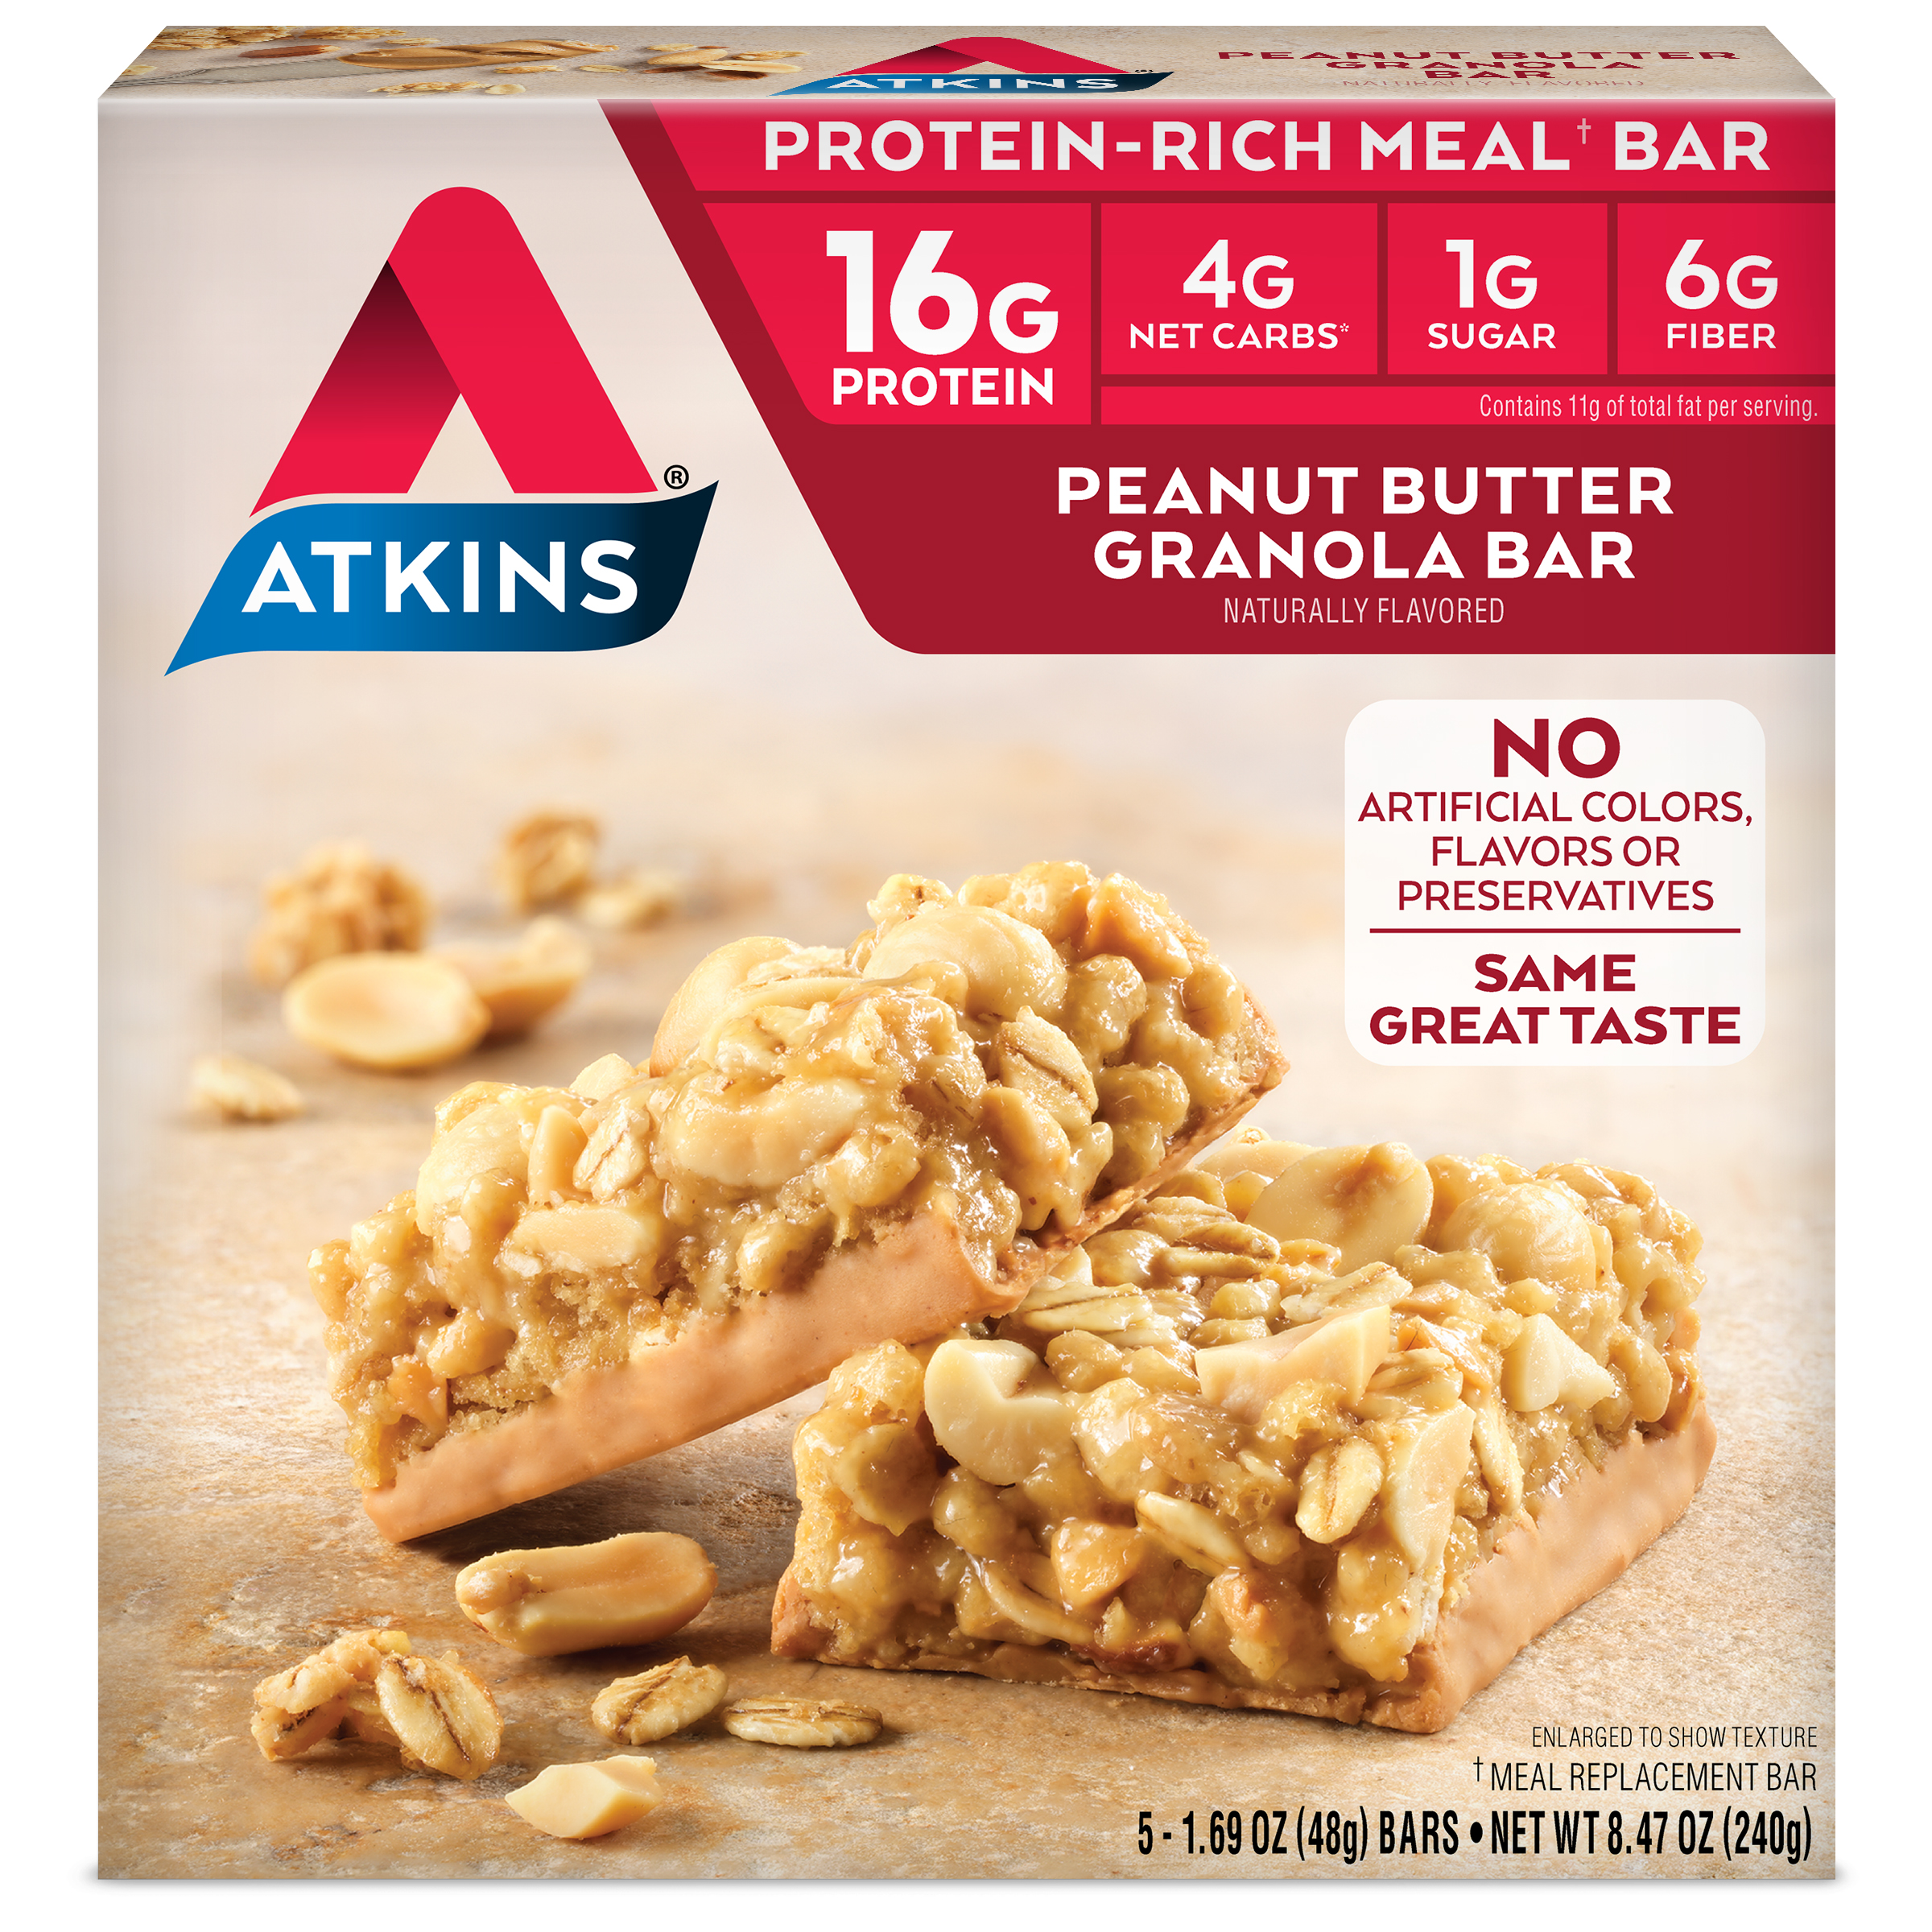 Atkins Peanut Butter Granola Bar, 1.7 oz, 5-pack (Meal Replacement)